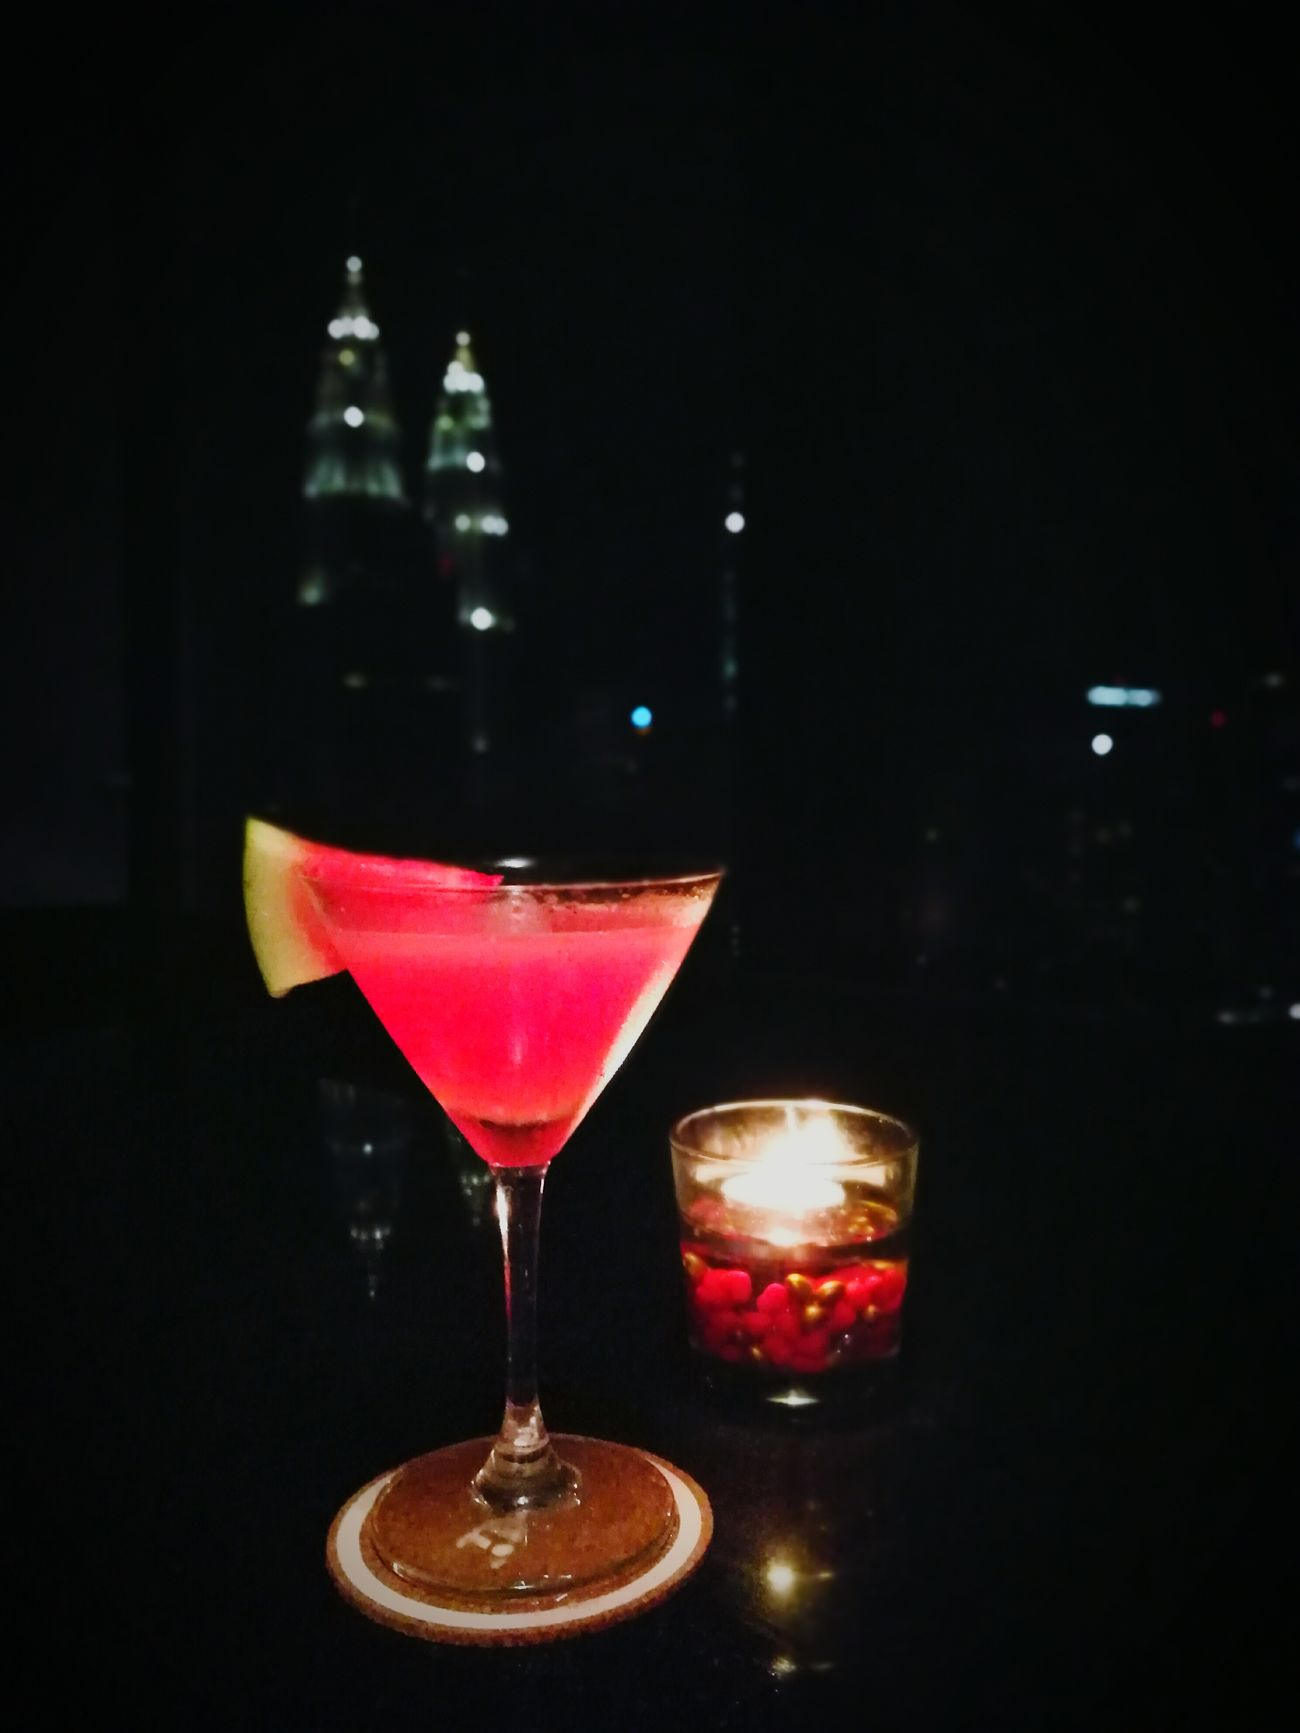 Melontini 🍸 Discover Your City Cocktail Freshness Close-up Barhopping Klcity Kuala Lumpur Malaysia  Nightlife Night View Martini Glass